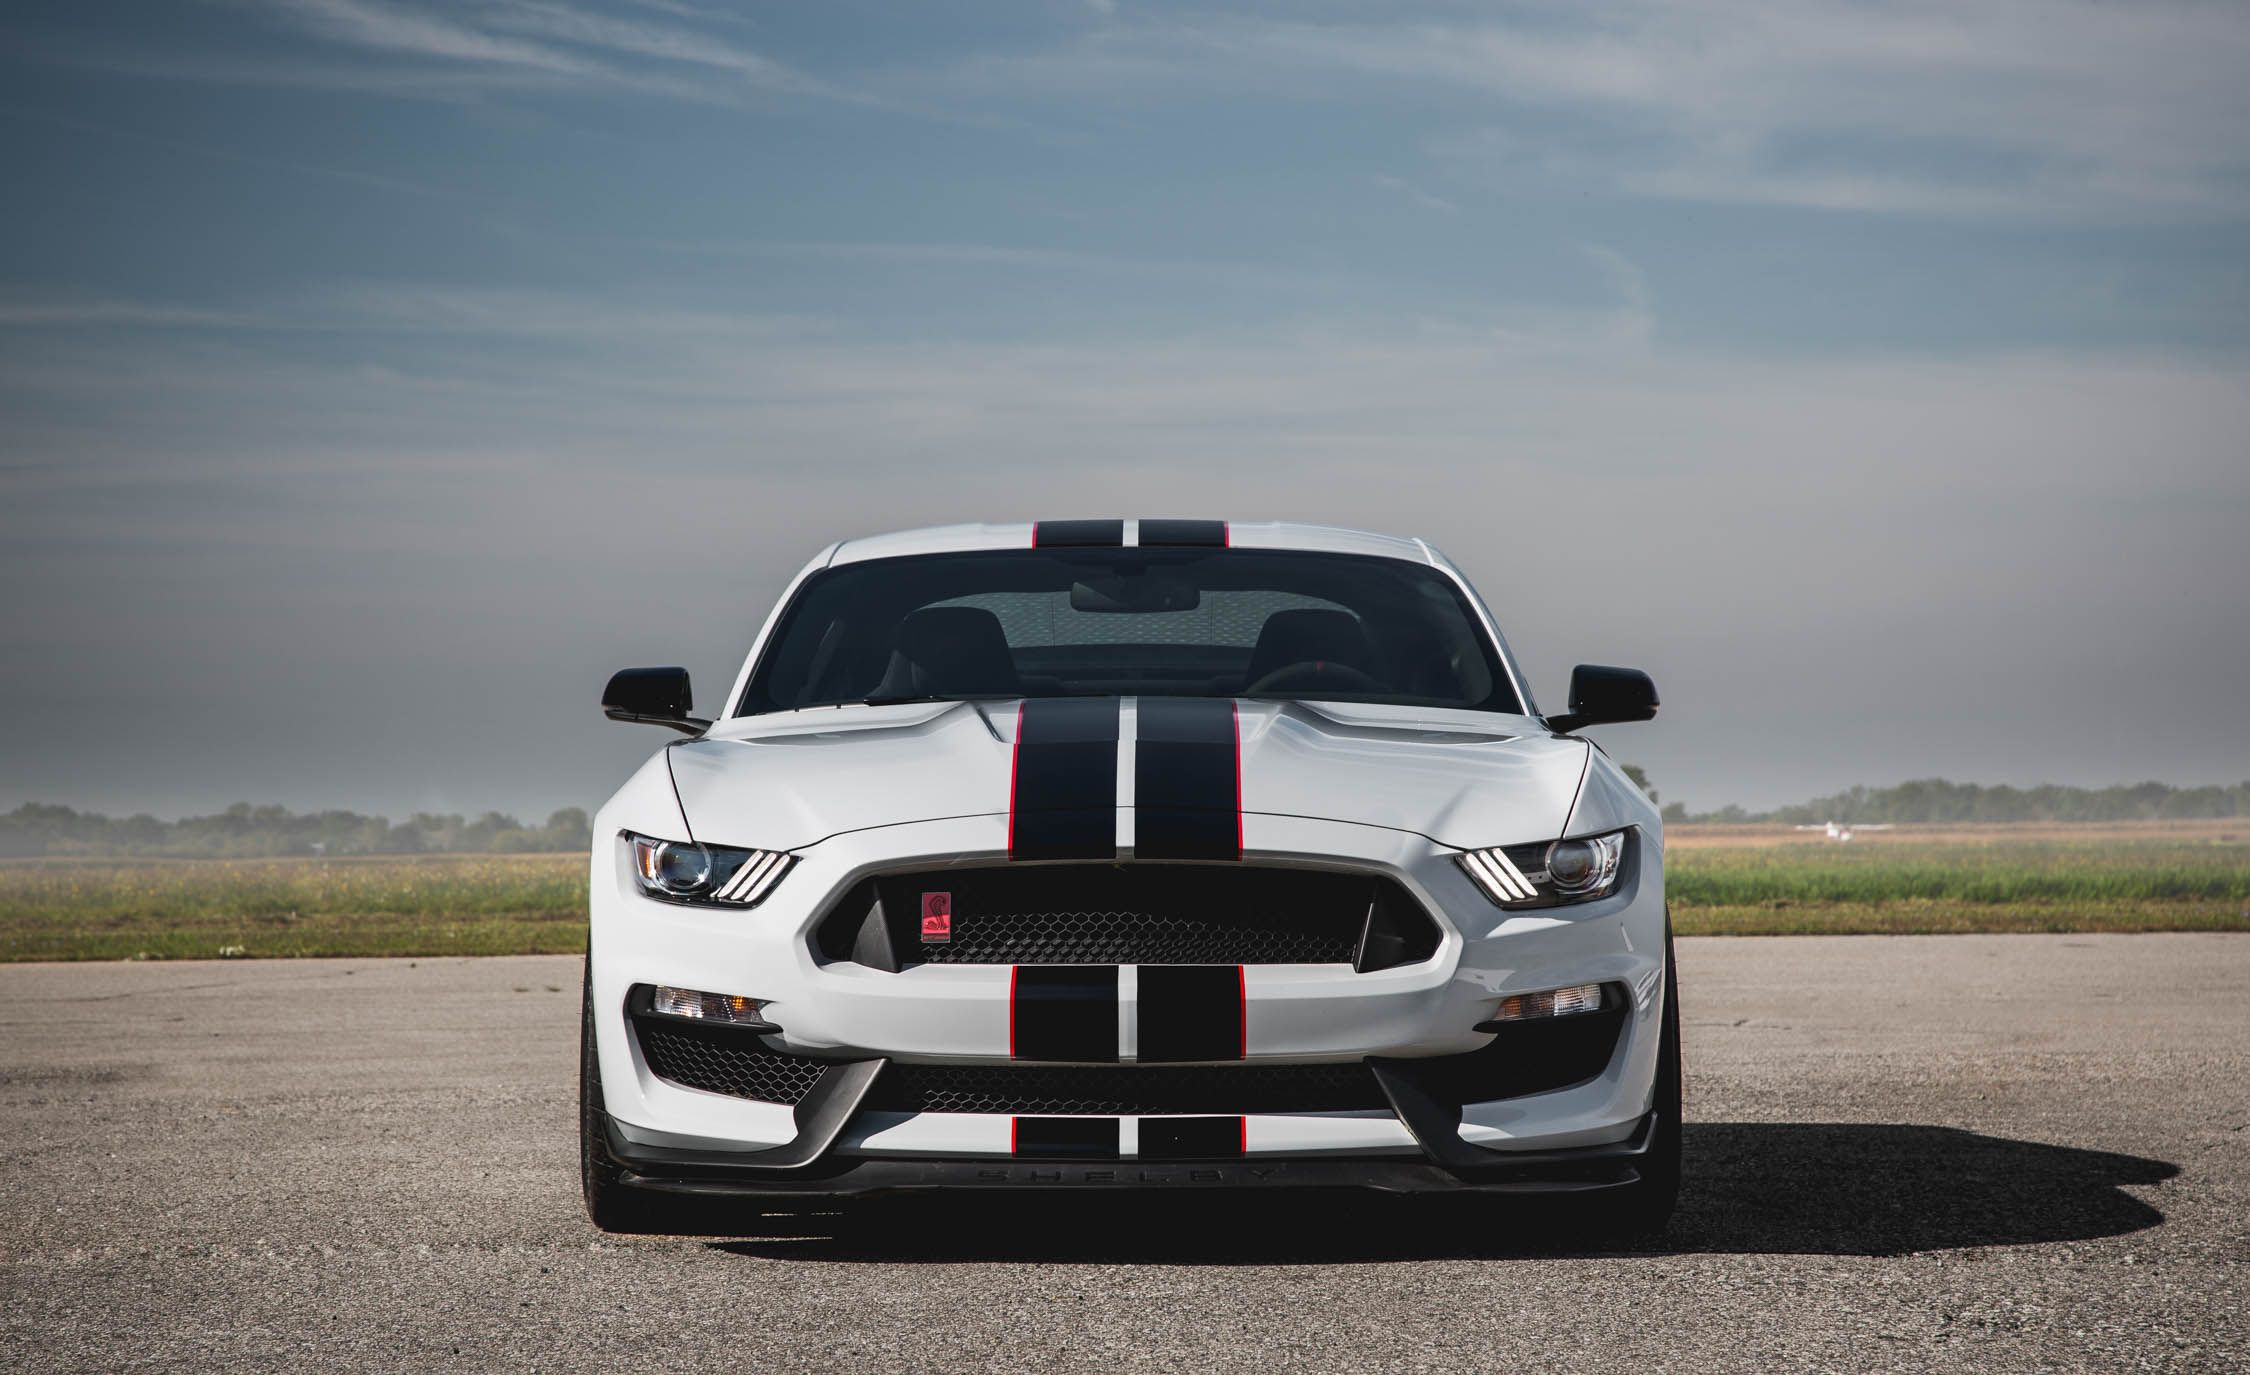 Ford Mustang Shelby Gt350 Gt350r Reviews Price Photos And Specs Car Driver